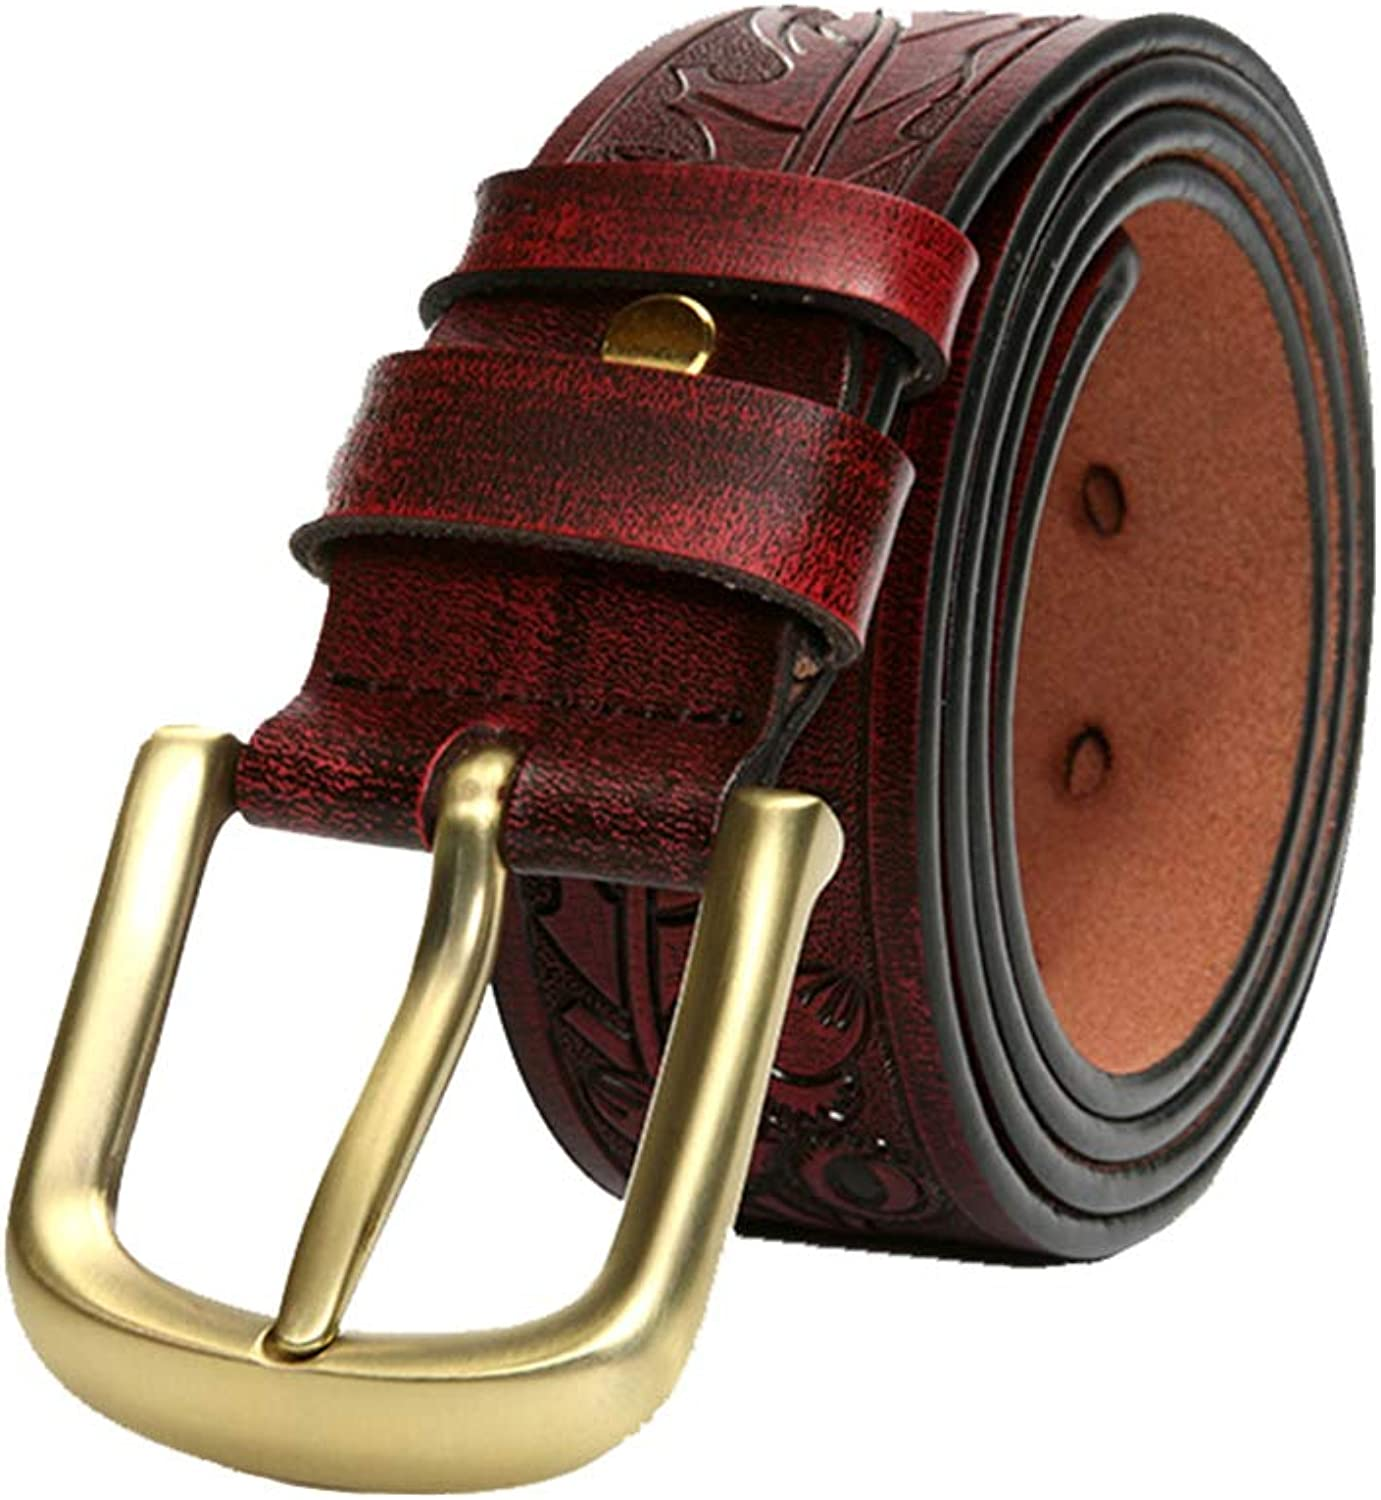 Men Leather Dress Belt Men's Belts Carved Craft Leather Men's Belts Business Casual Pin Buckle Jeans Belt Suitable for All Seasons and Places (Size   125 cm)